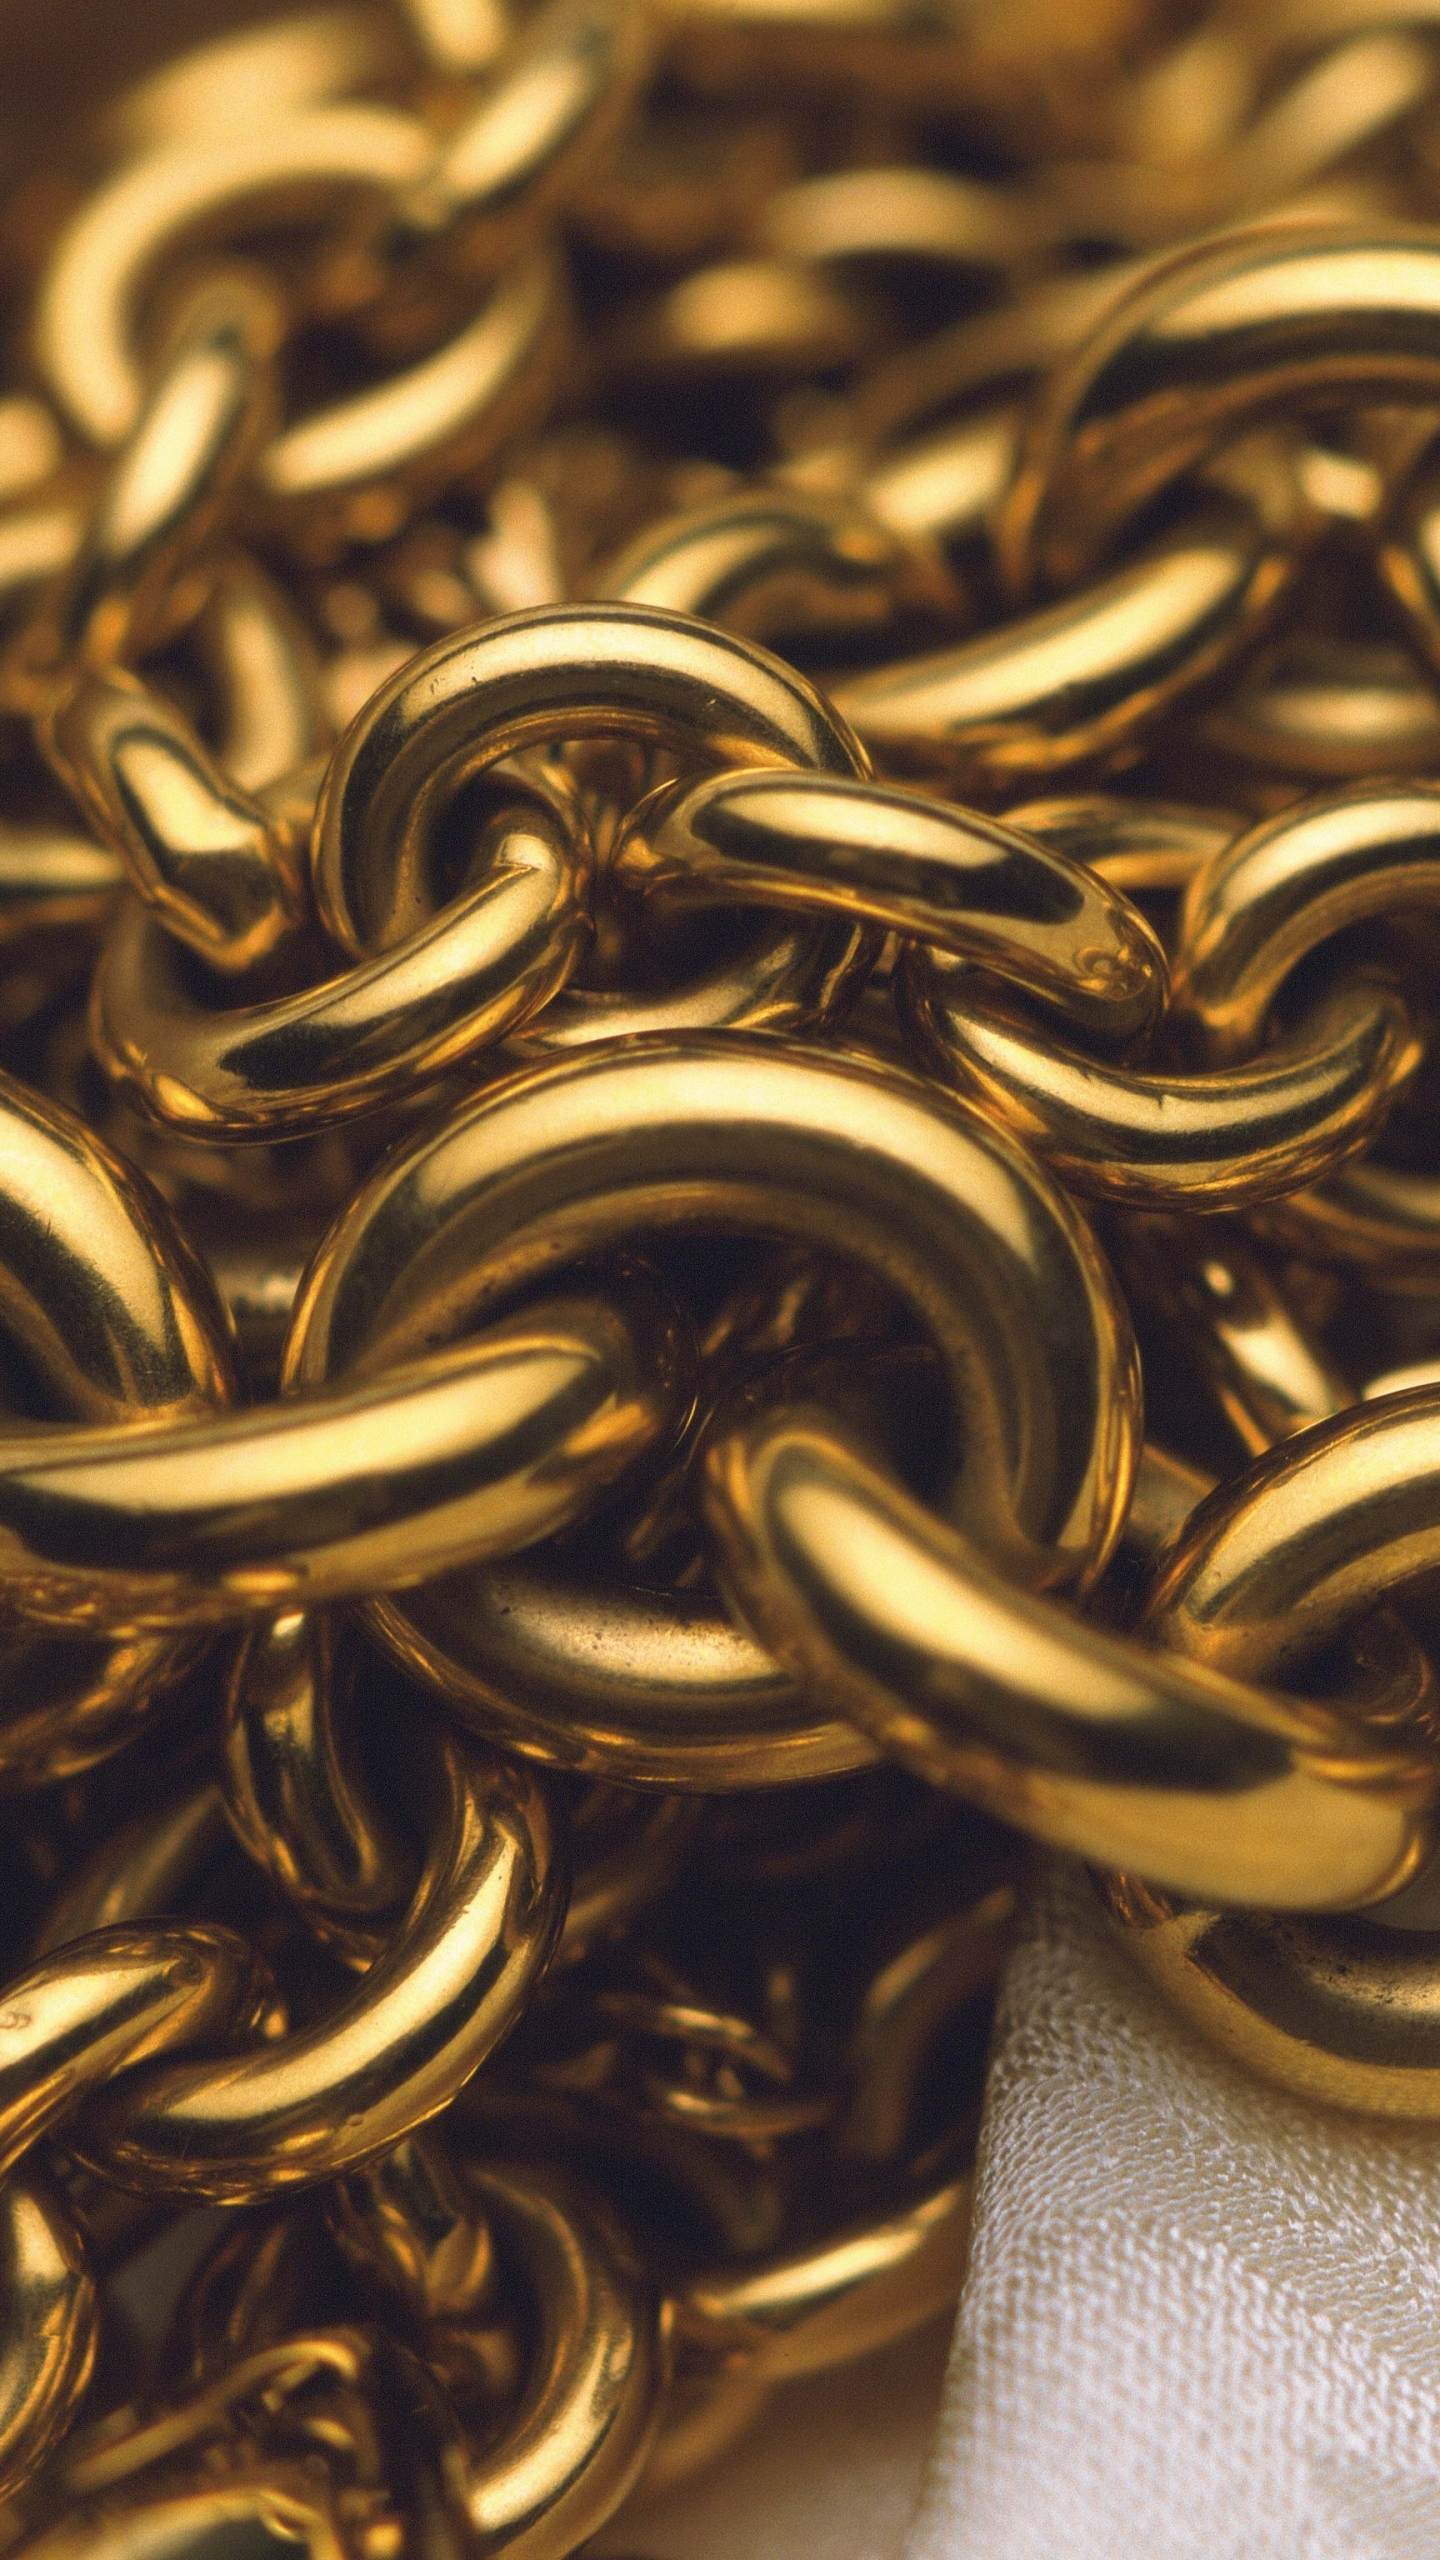 Download Gold Chain Wallpaper Gallery